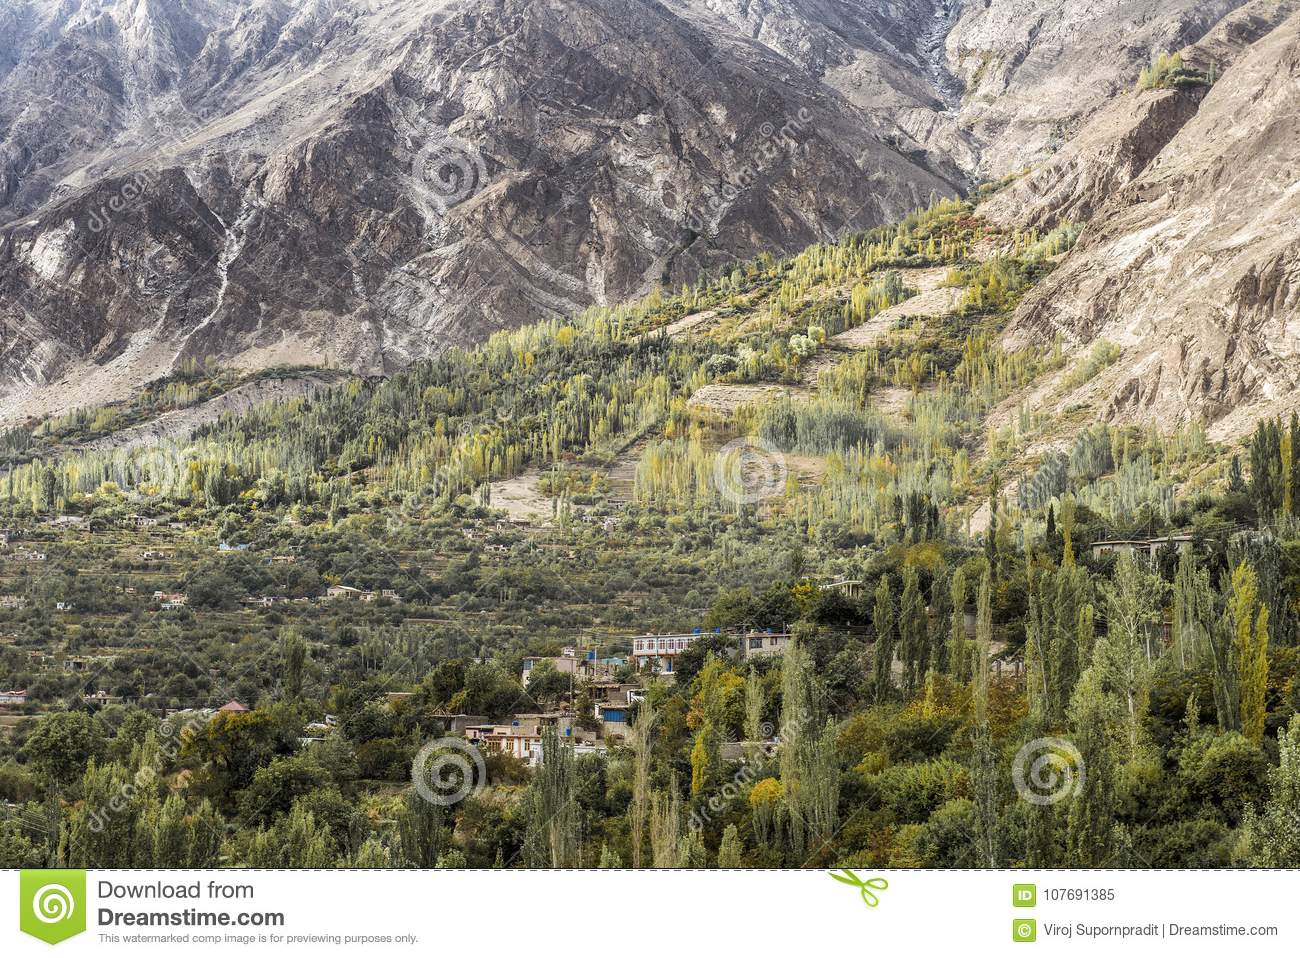 View of Hunza Valley, Pakistan.